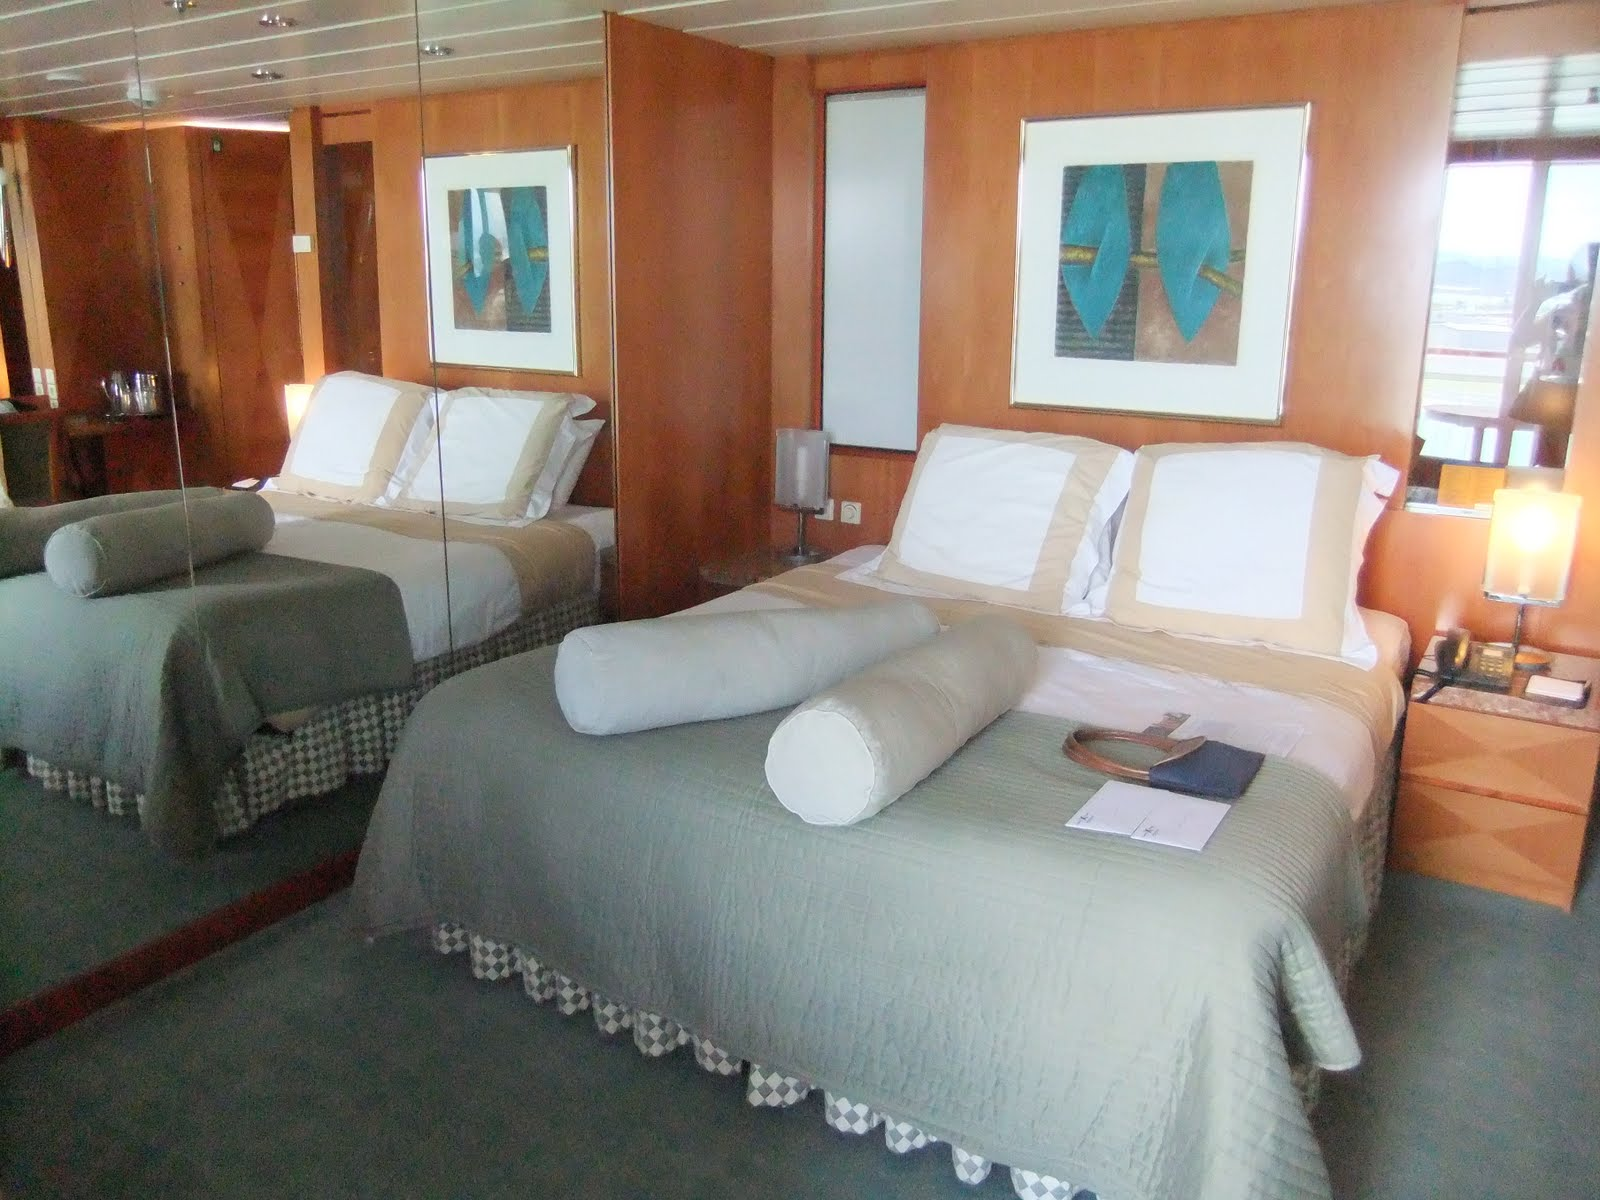 Celebrity Summit Cabin 6131 - Reviews, Pictures ...